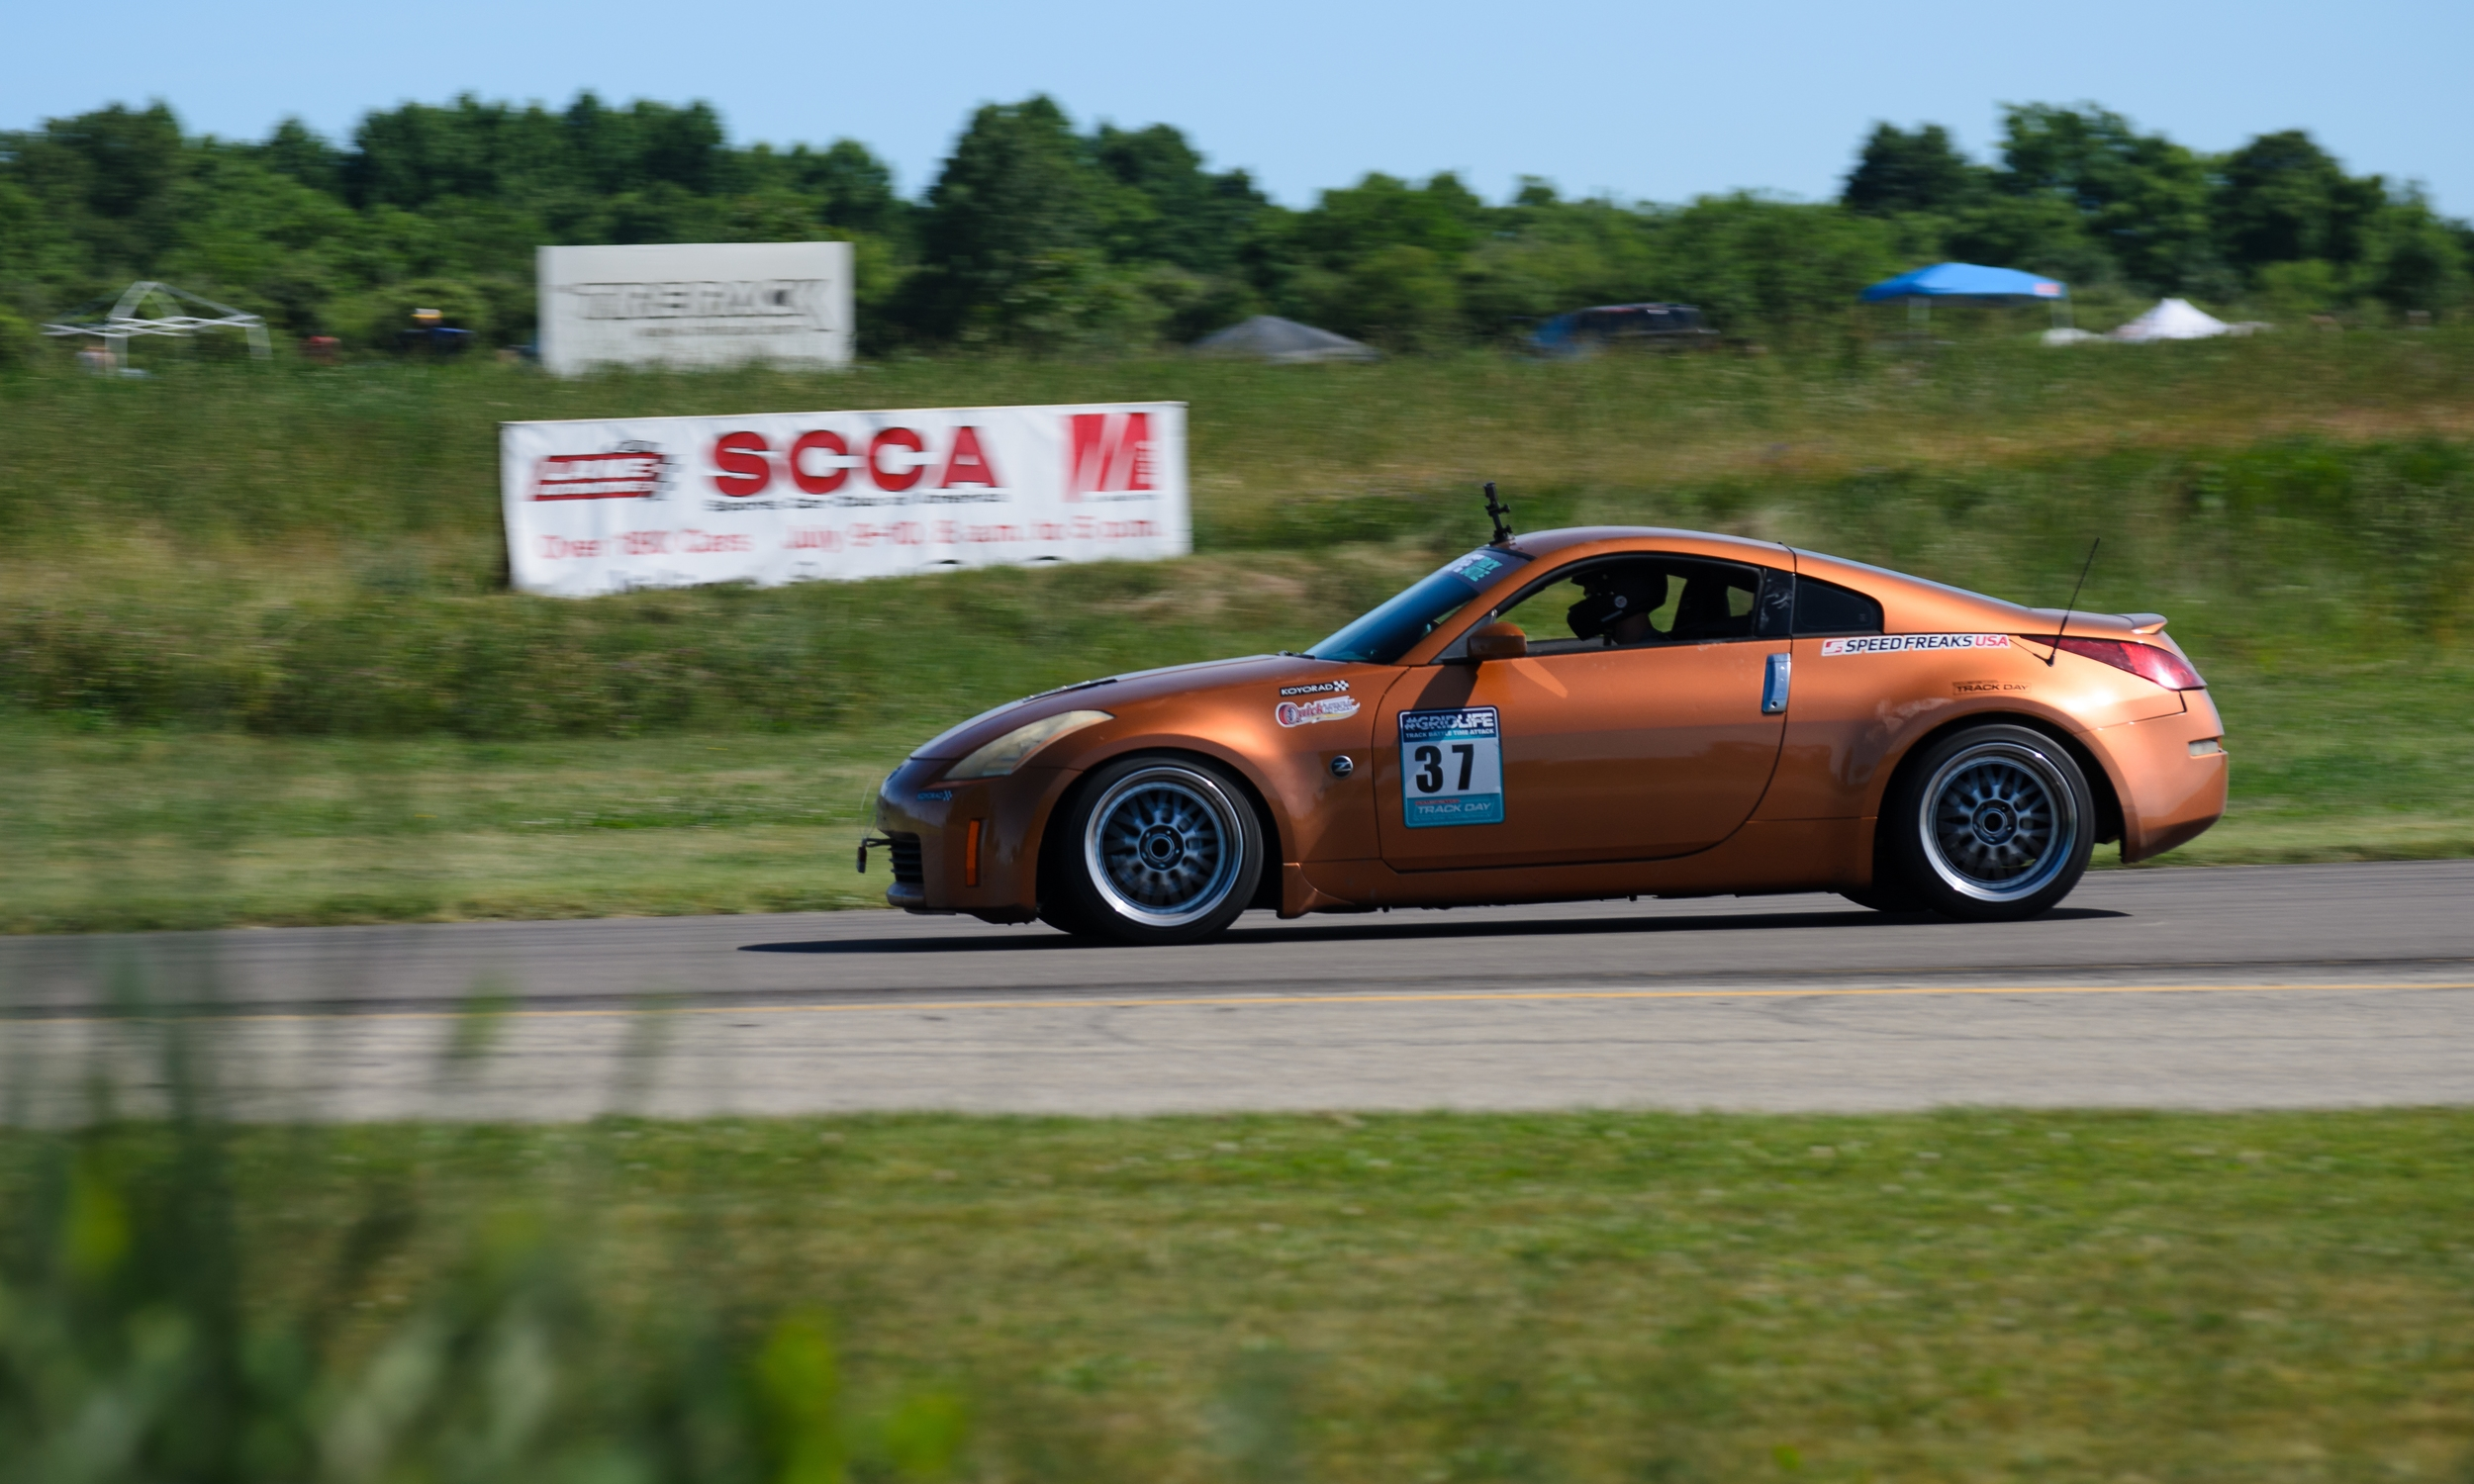 Alex in his clean 350Z put down a respectable time of 1.44.840, which if this was last season's Round 1 would have put him in First. Look forward to seeing more of this car and driver.